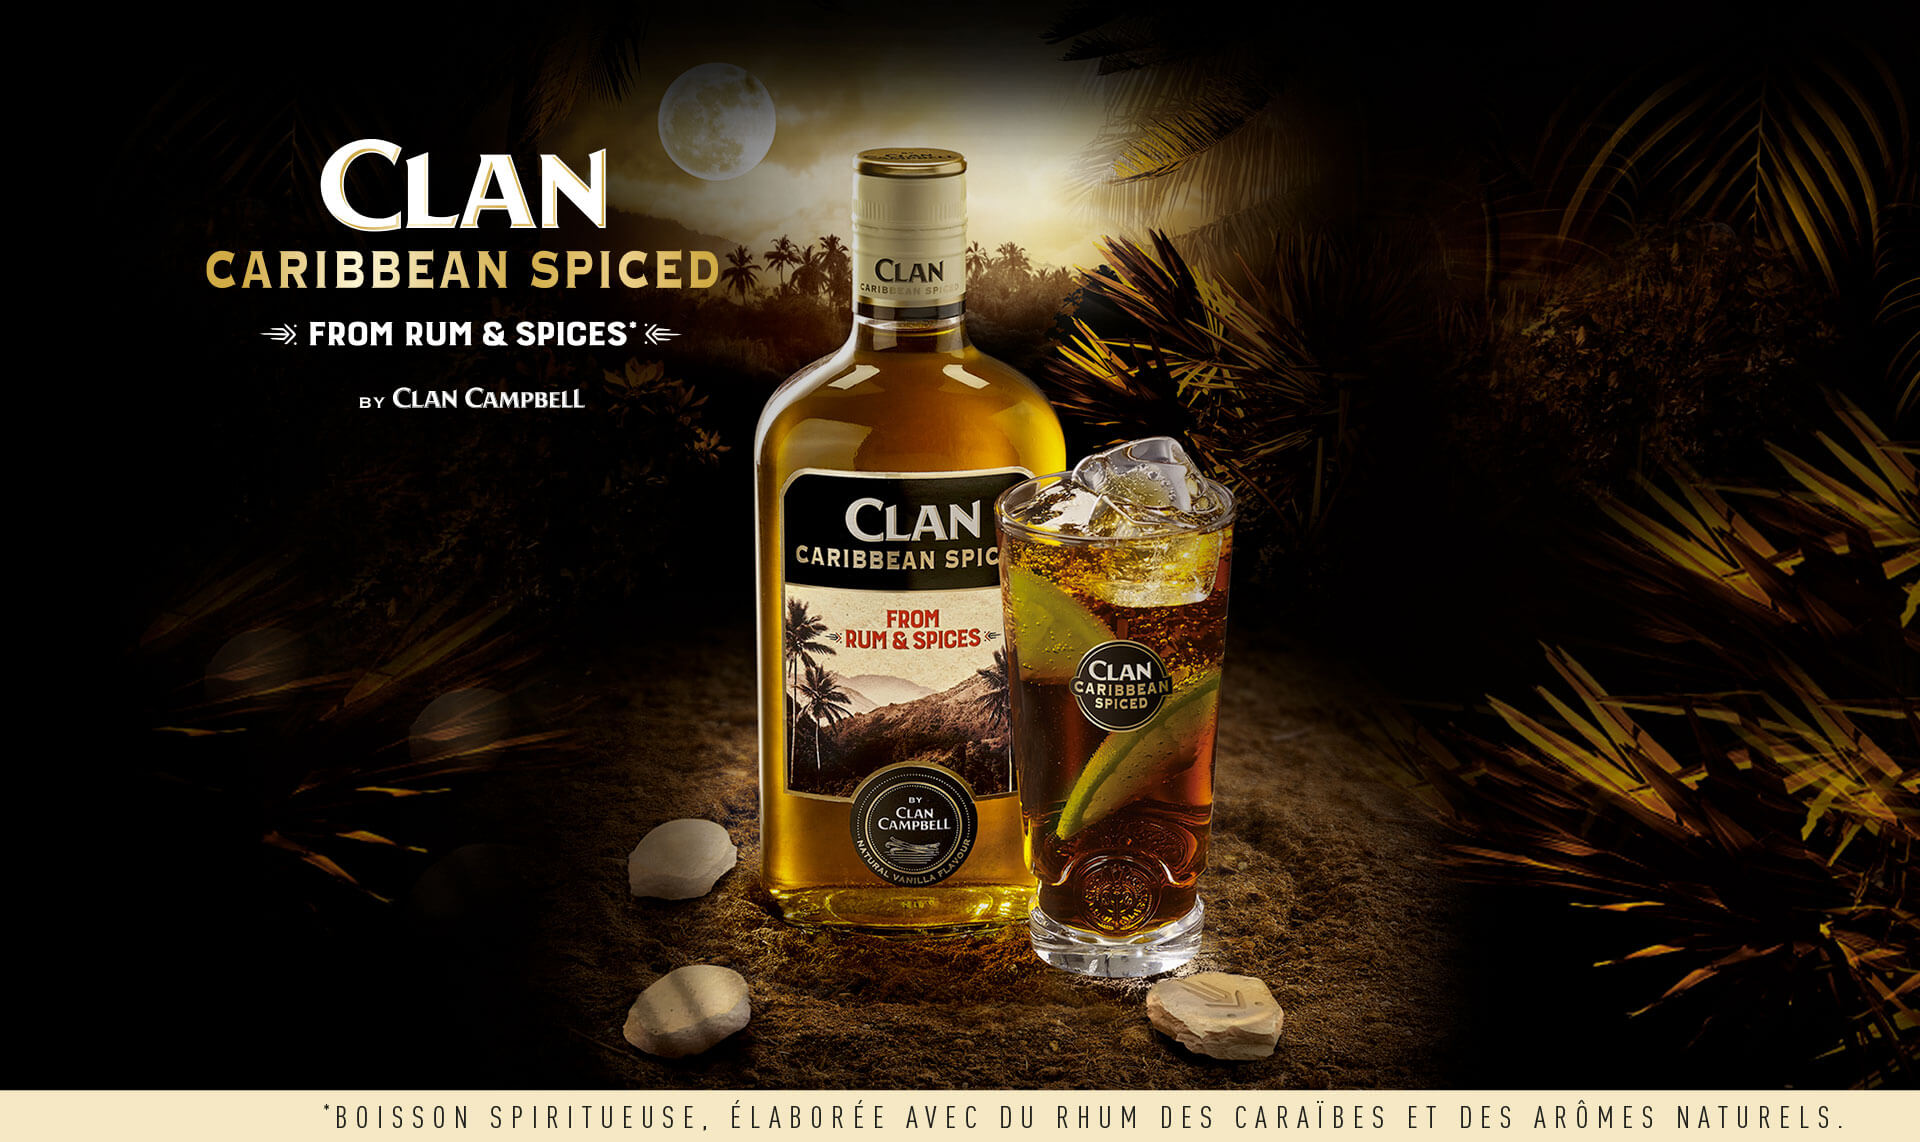 Clan Caribbean Spiced by Clan Campbell